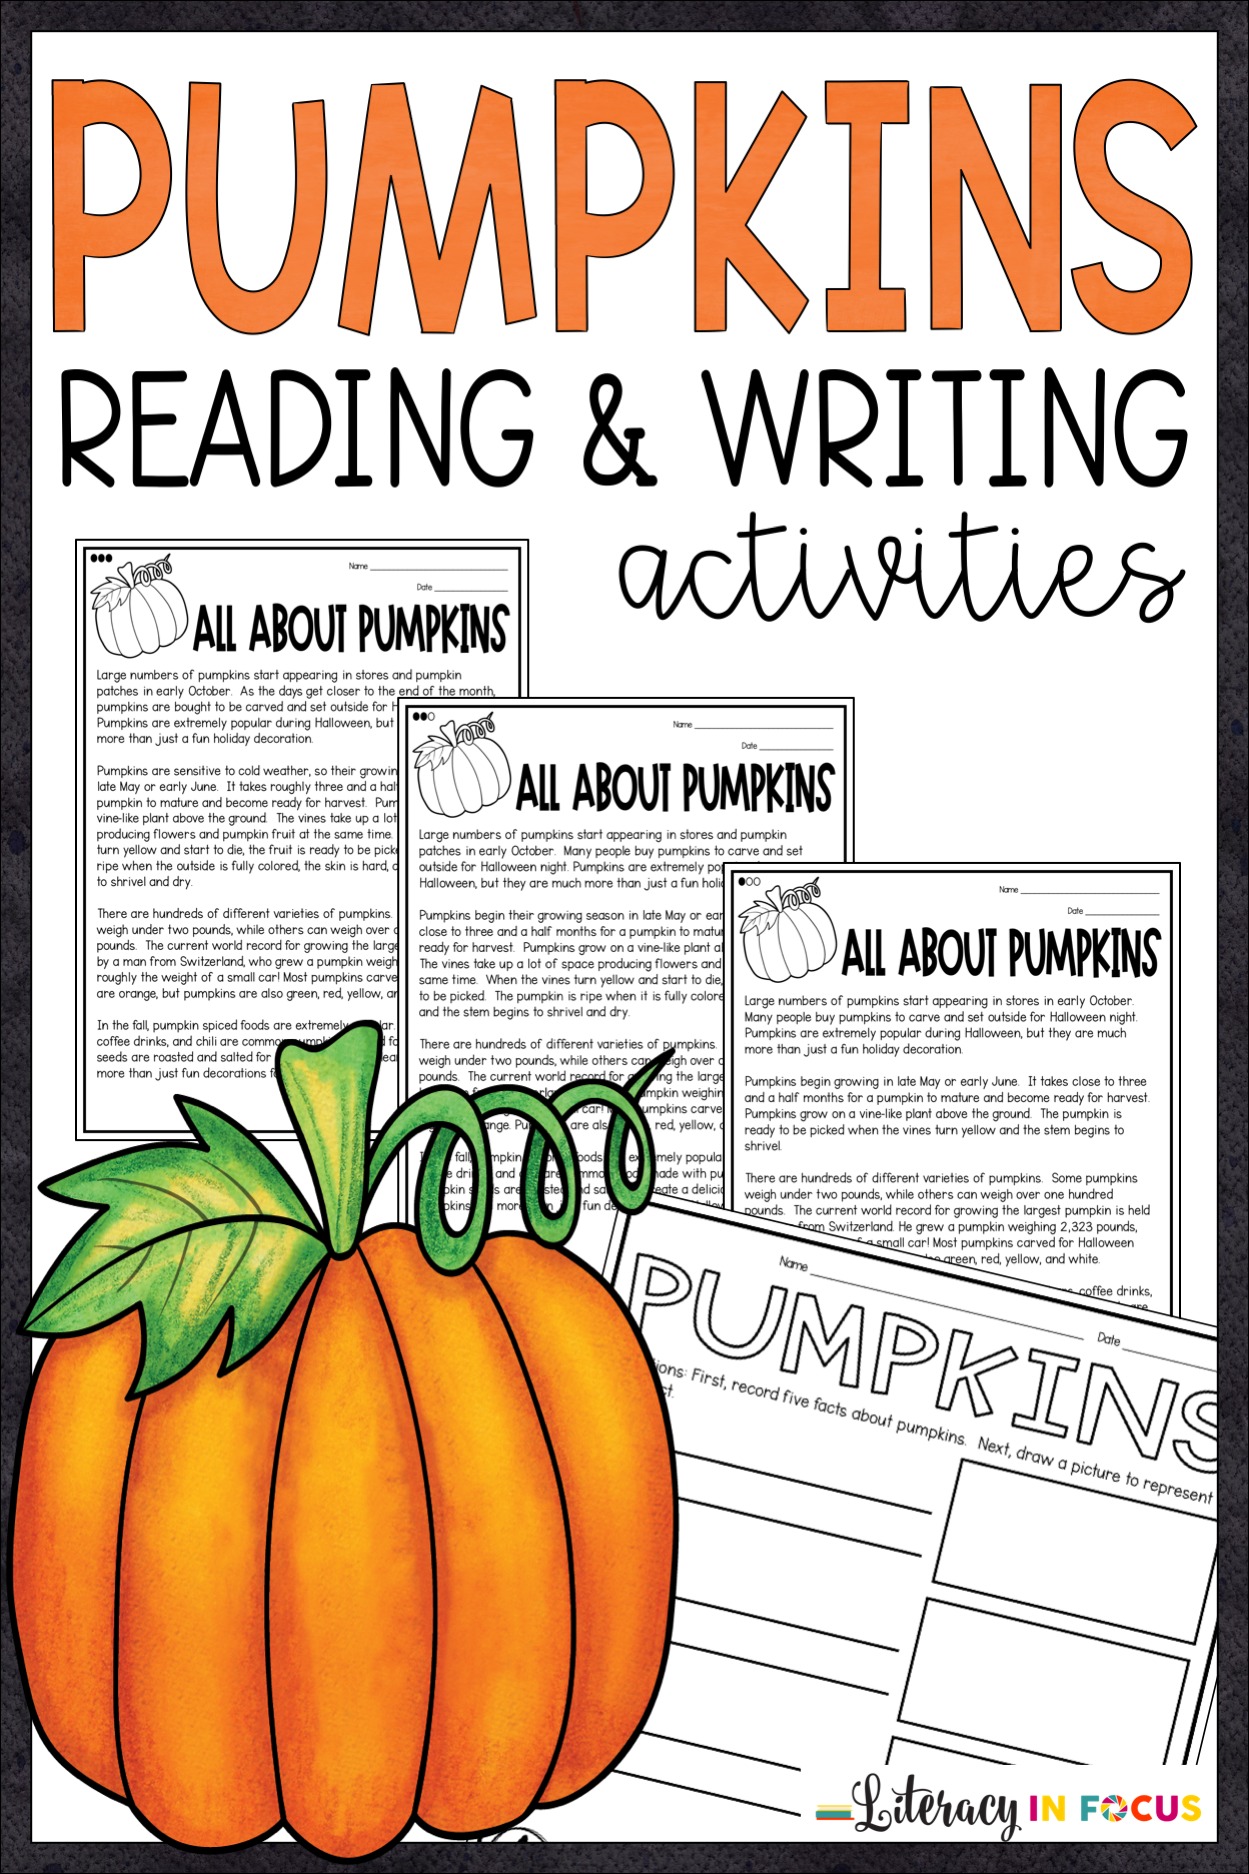 All About Pumpkins Reading And Writing Activities